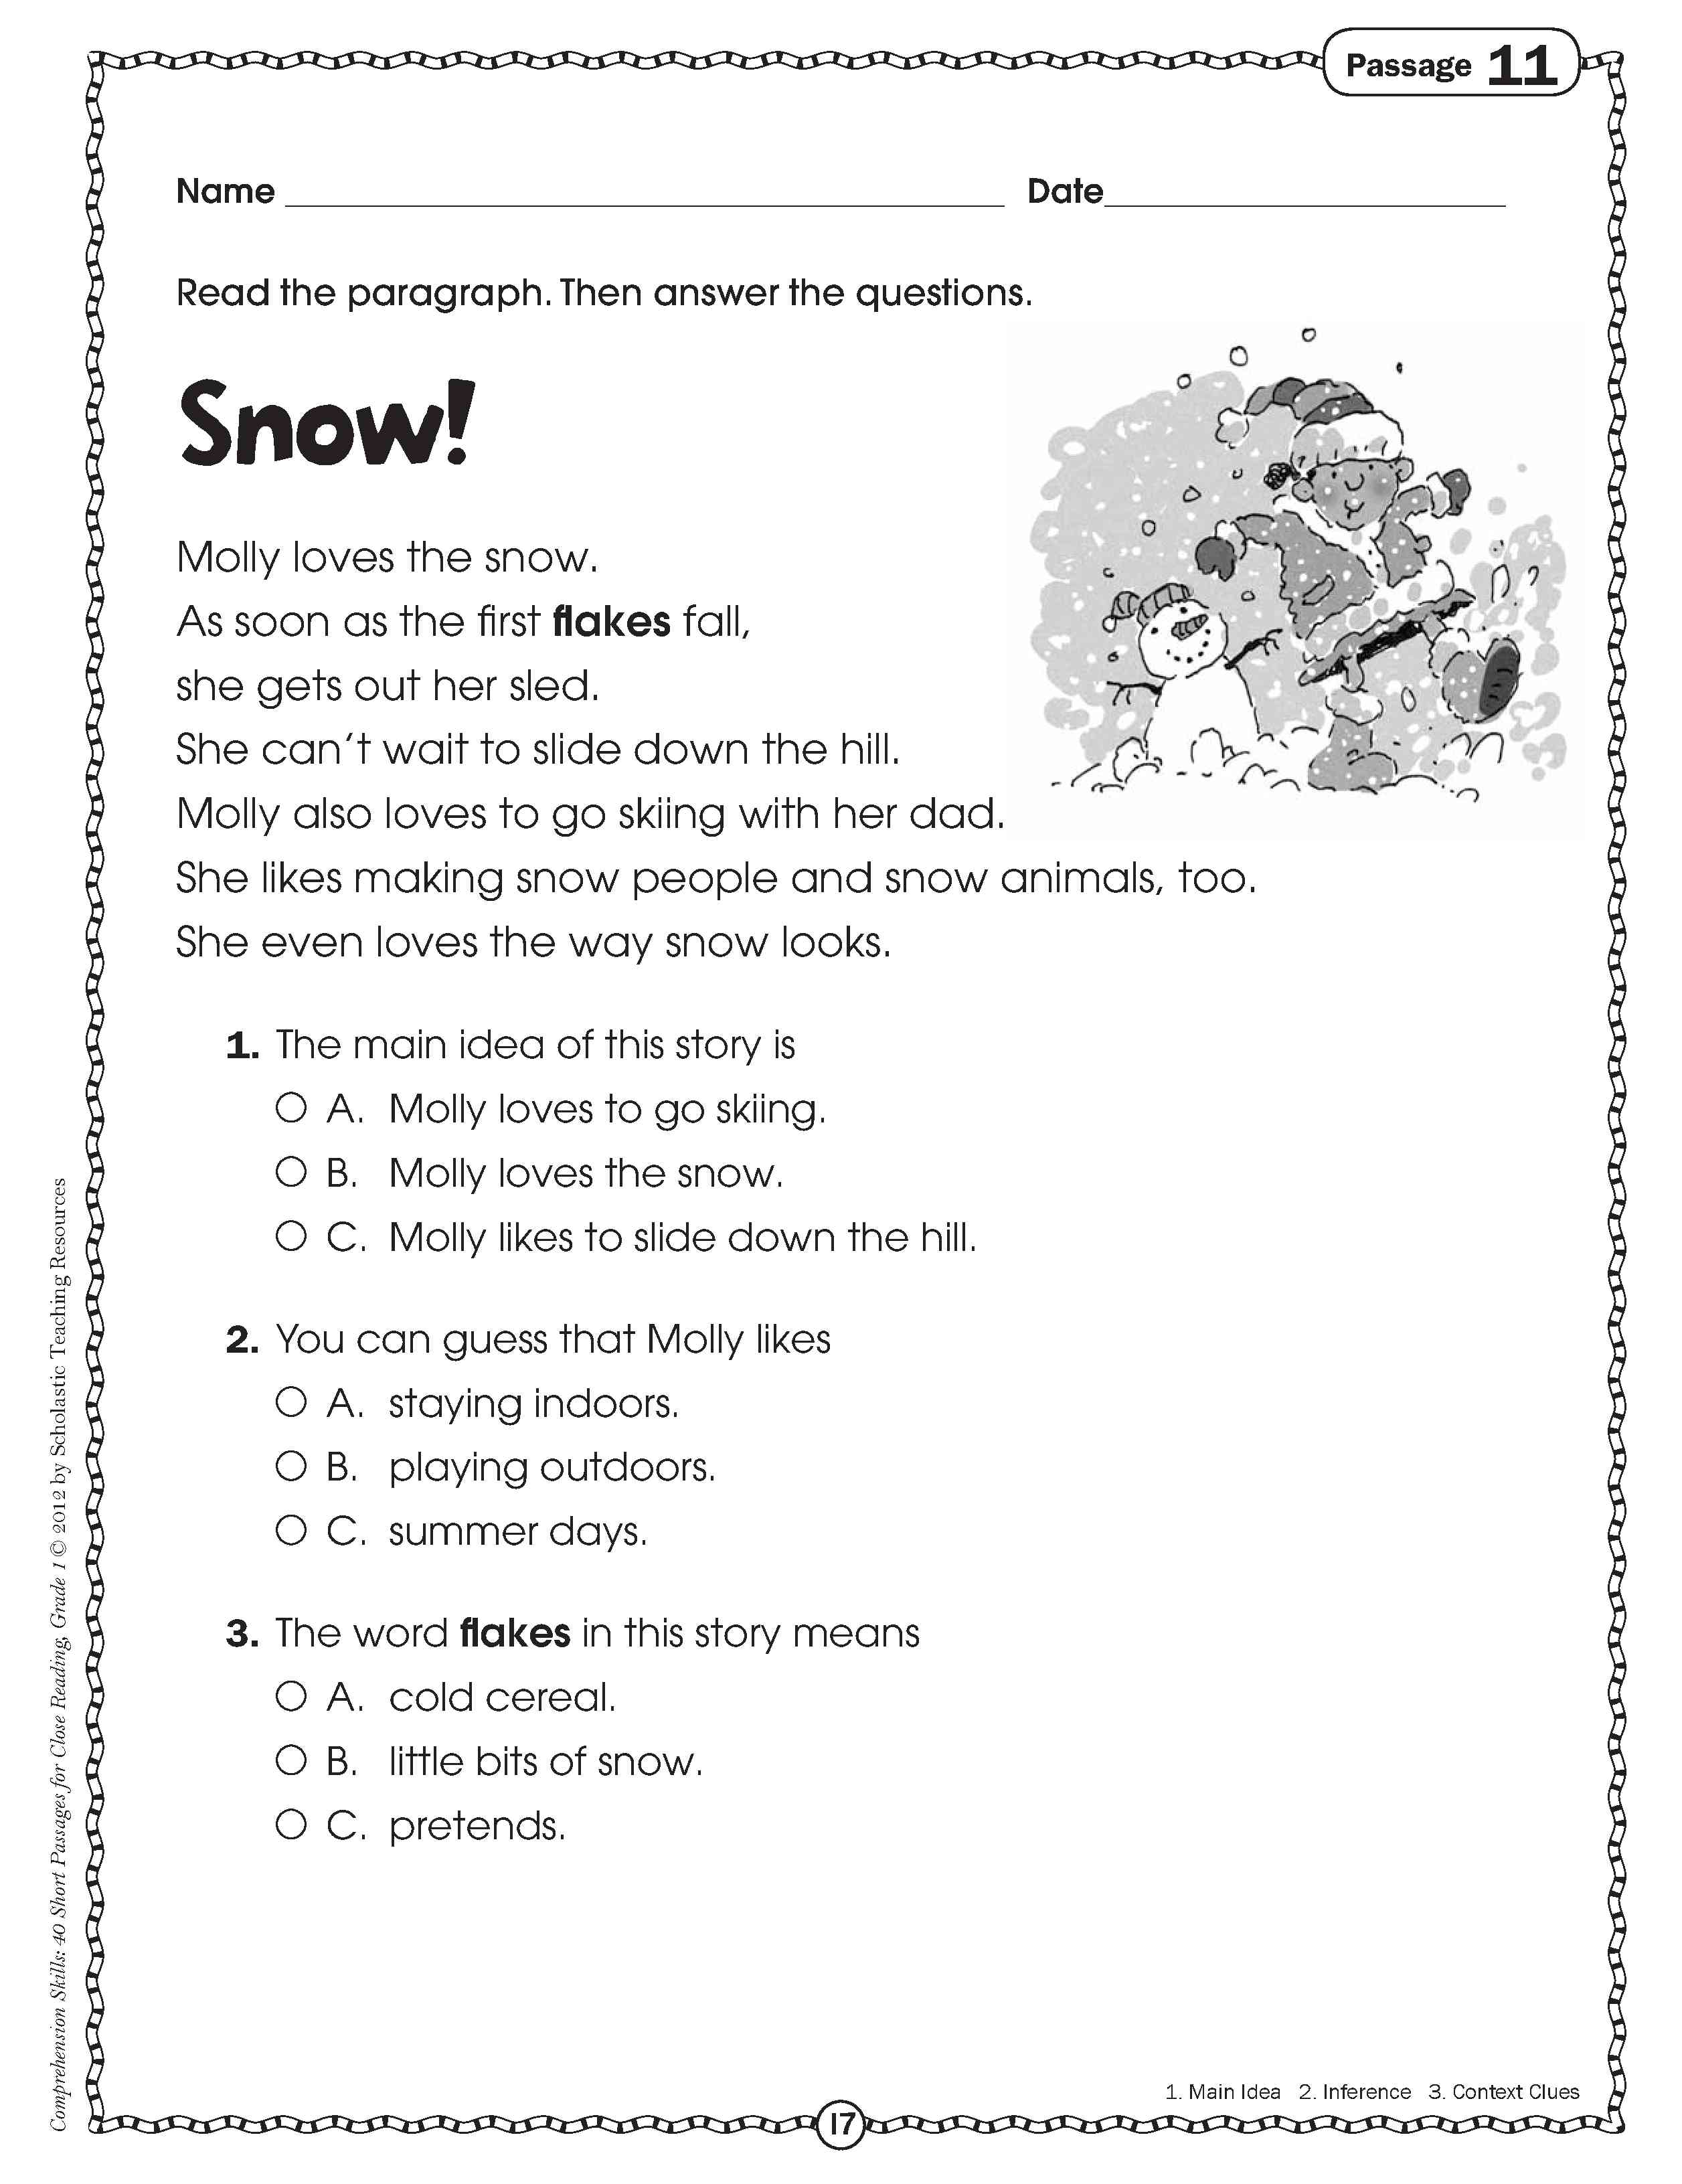 Worksheet Free Third Grade Reading get crafty with your common core reading this holiday season simile snowflake poetry close for grade one